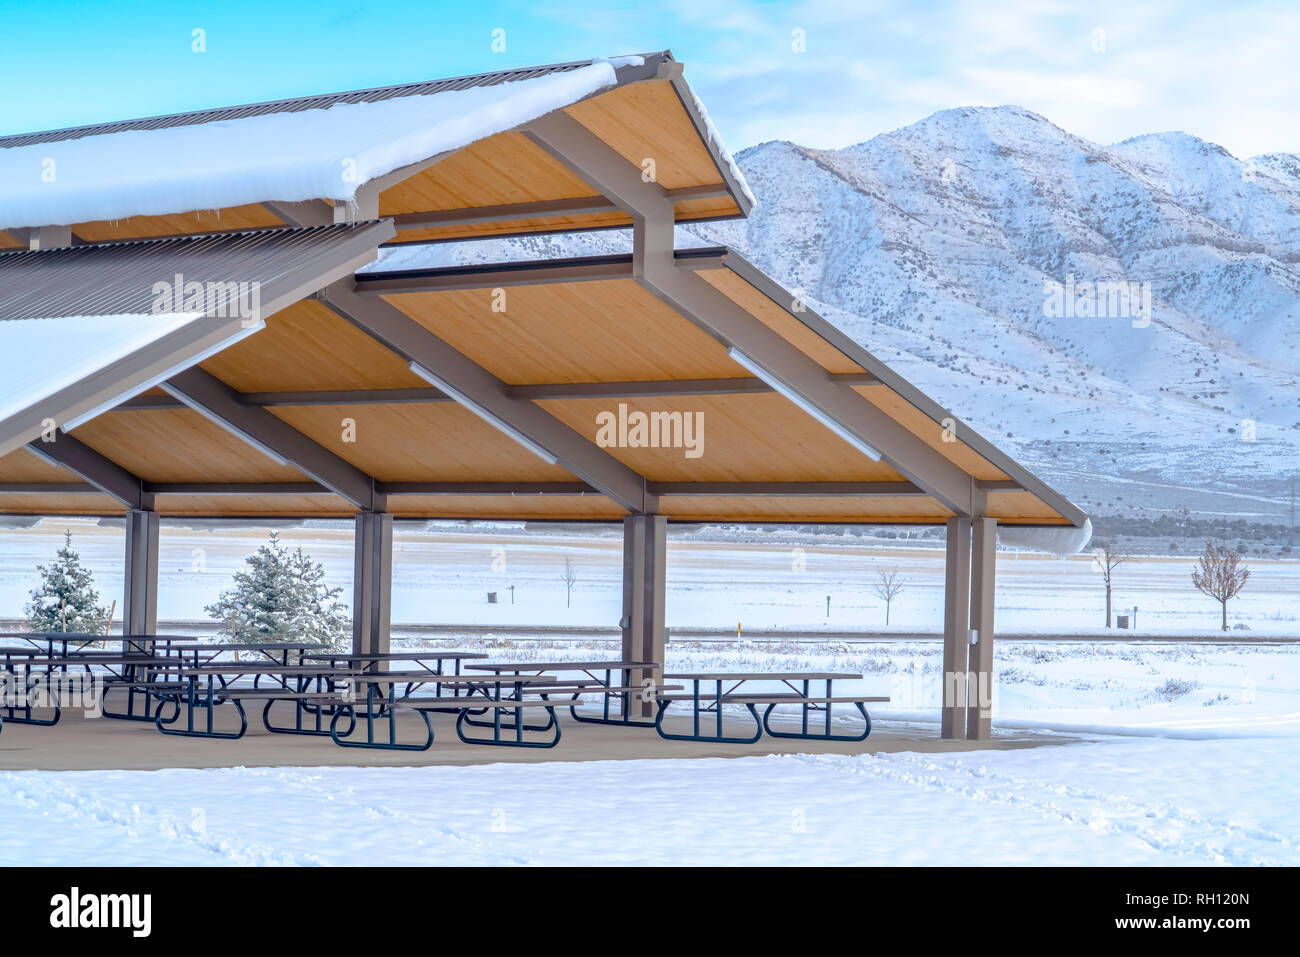 Eating area against mountain and sky in Utah - Stock Image